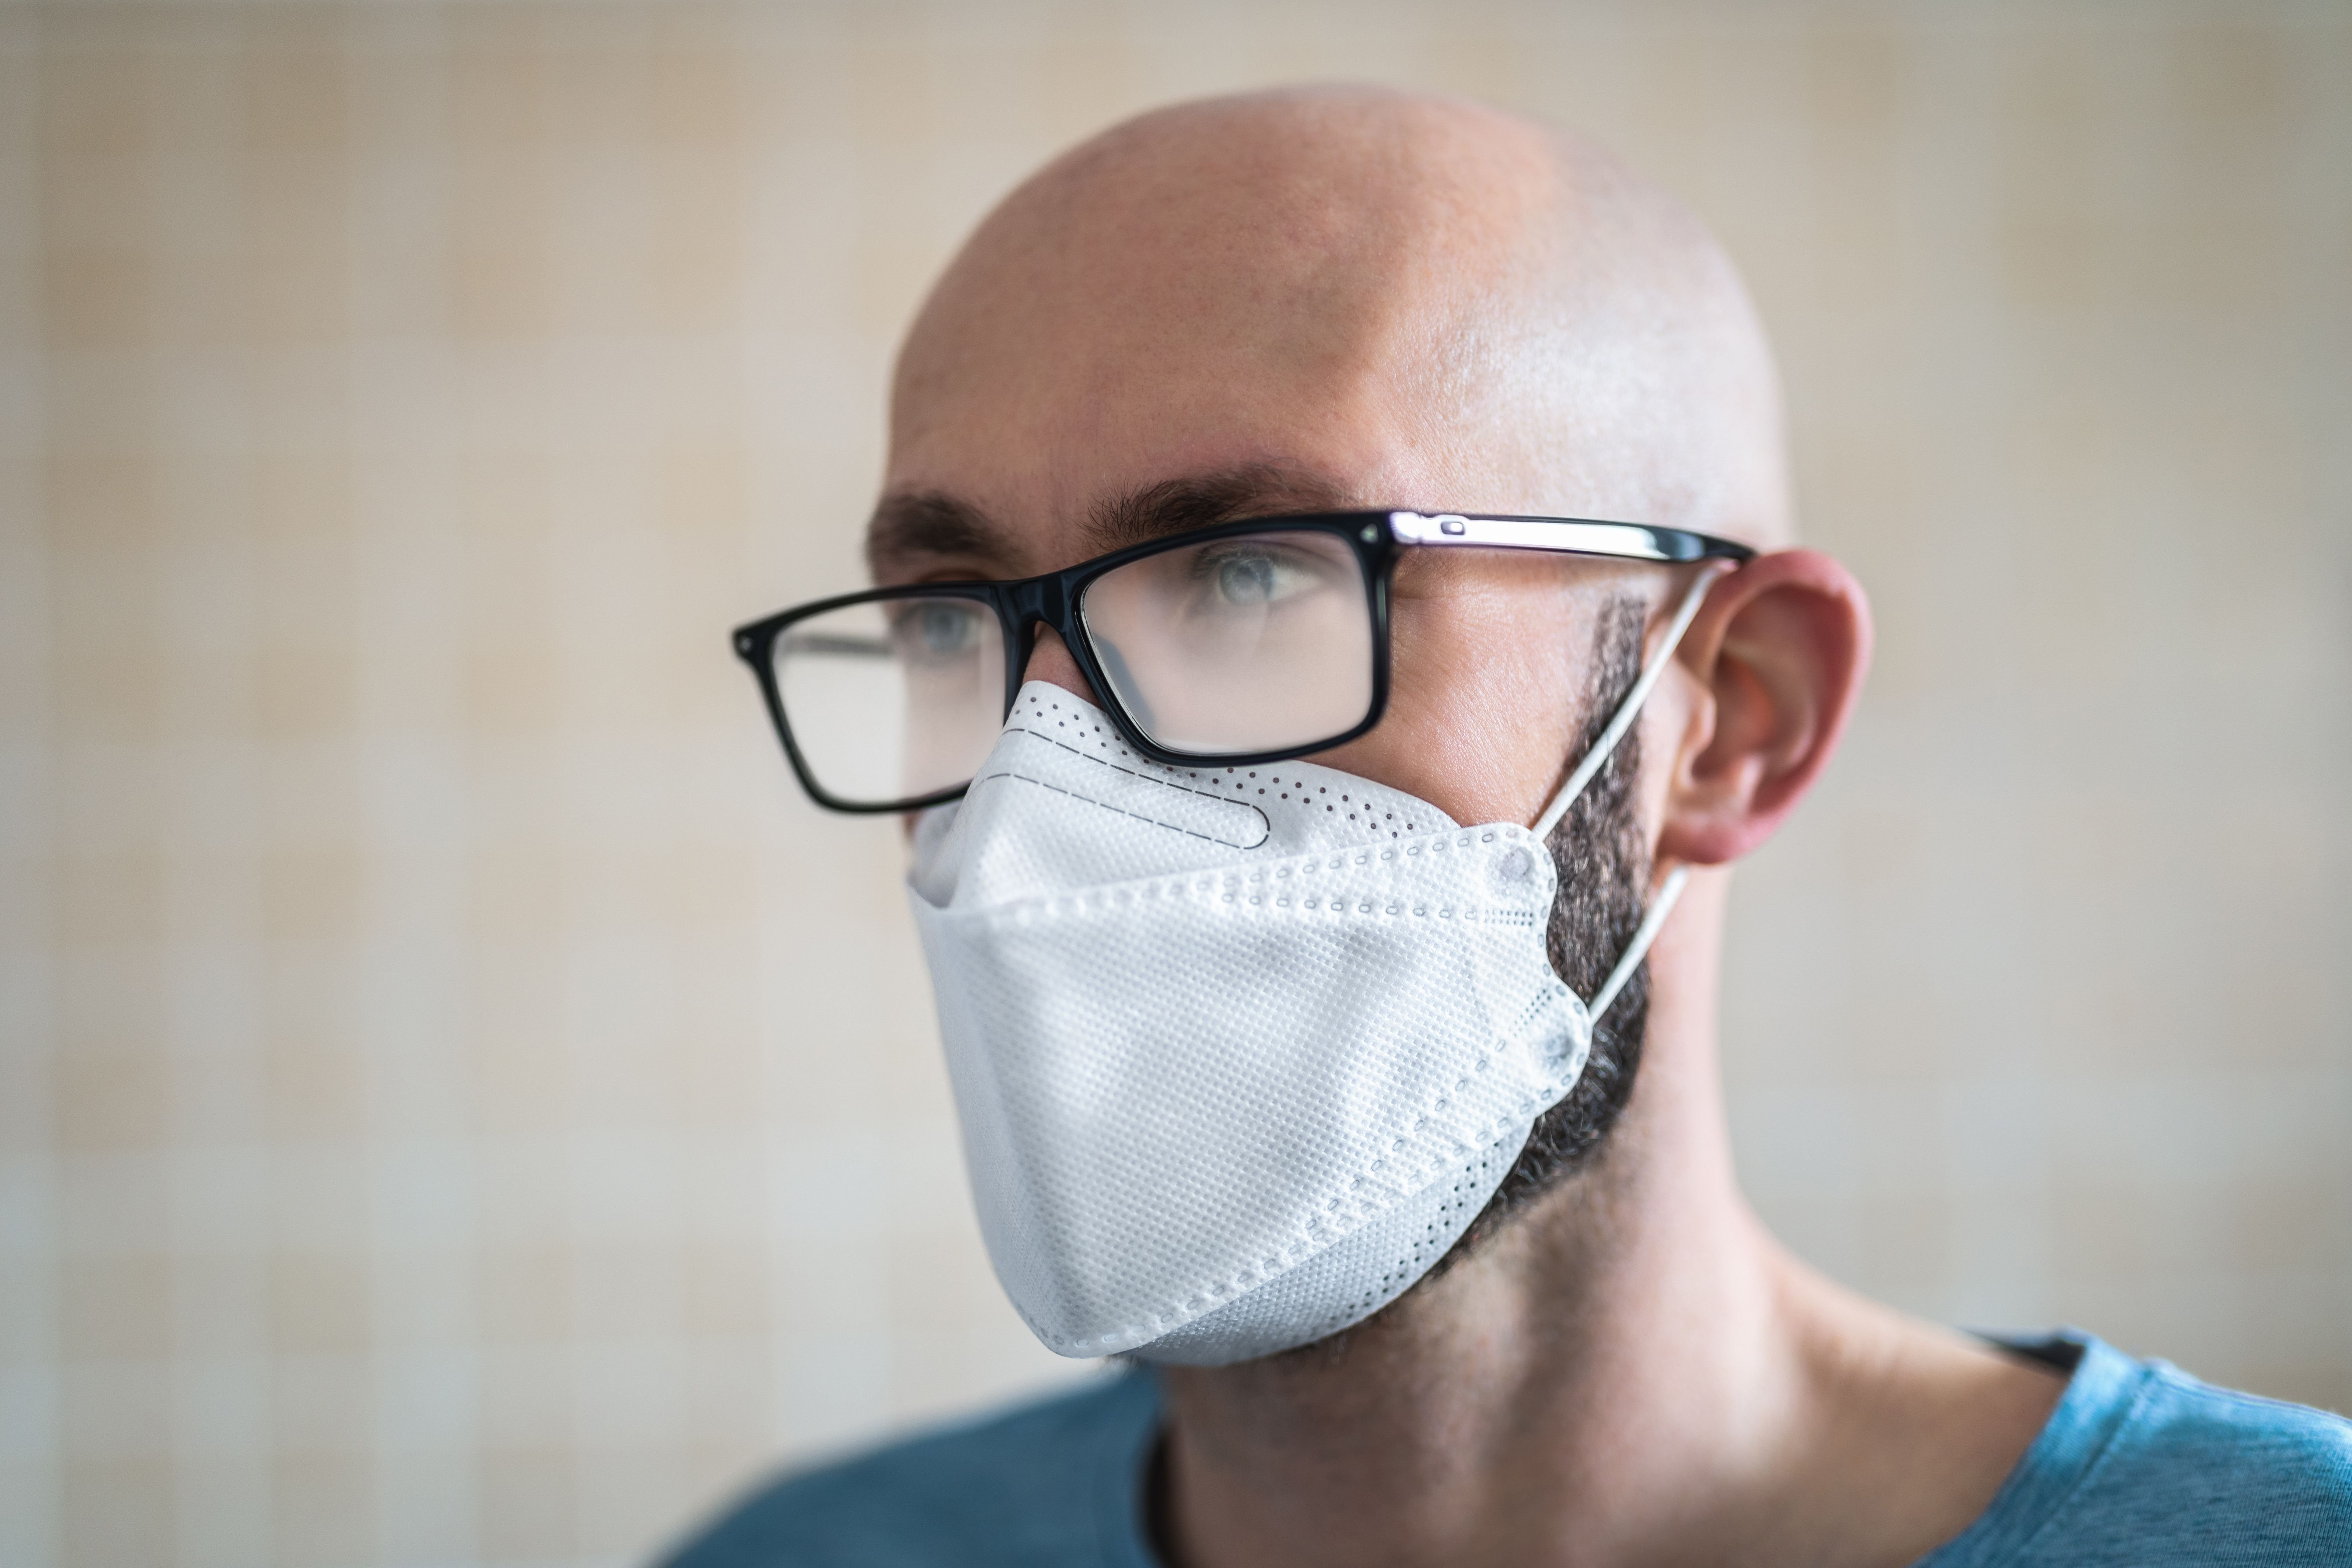 A man wearing glasses and a mask.   Source: Getty Images